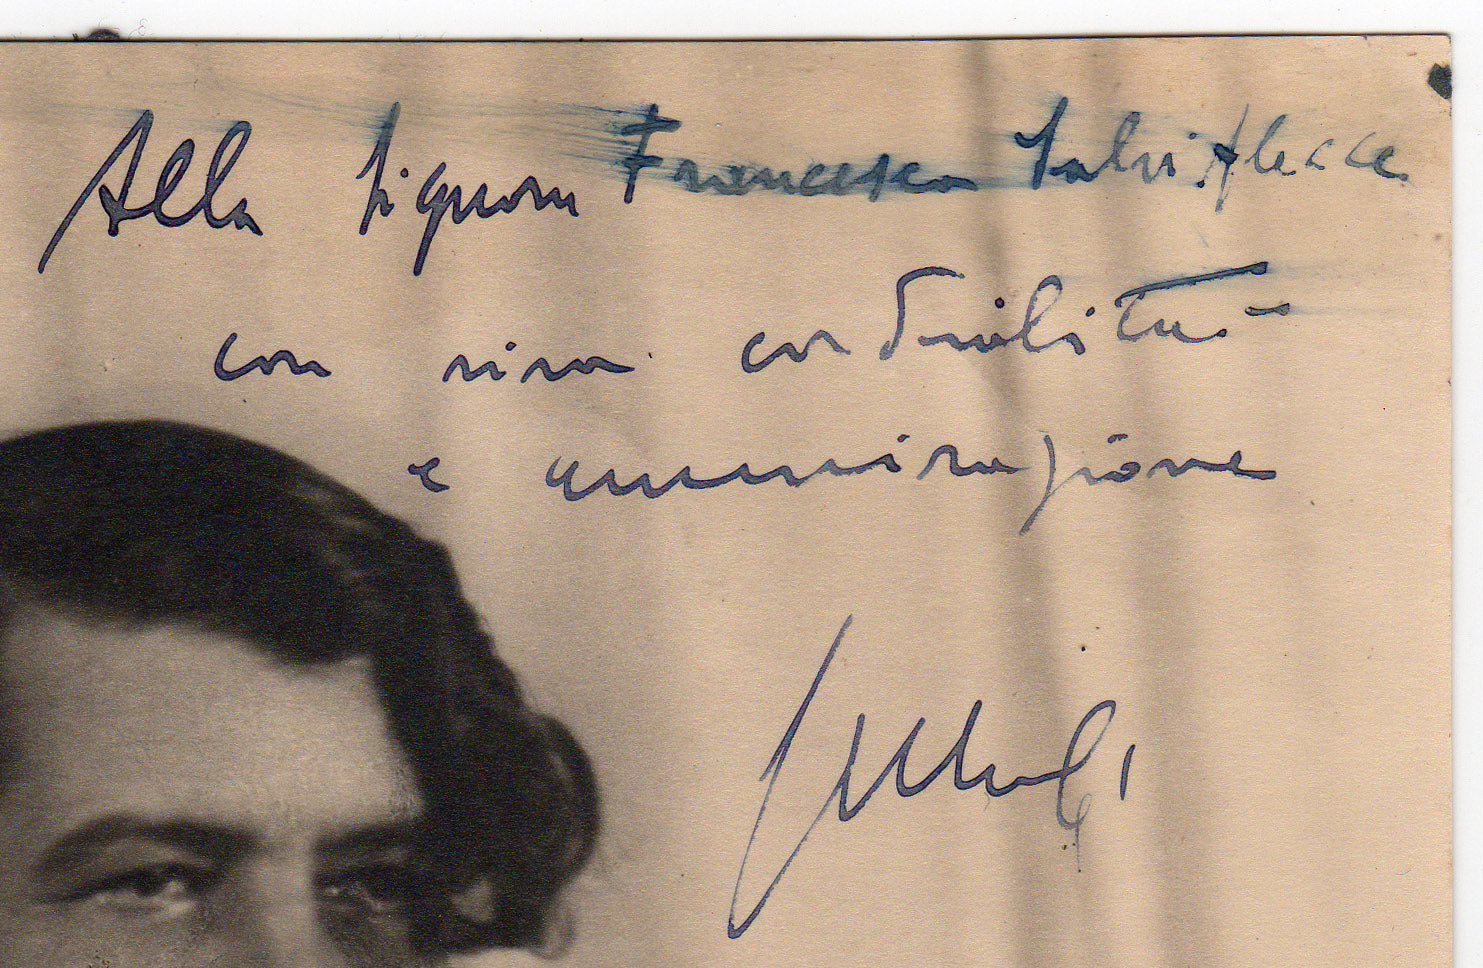 Giuseppe Mule composer - detail of autograph photo